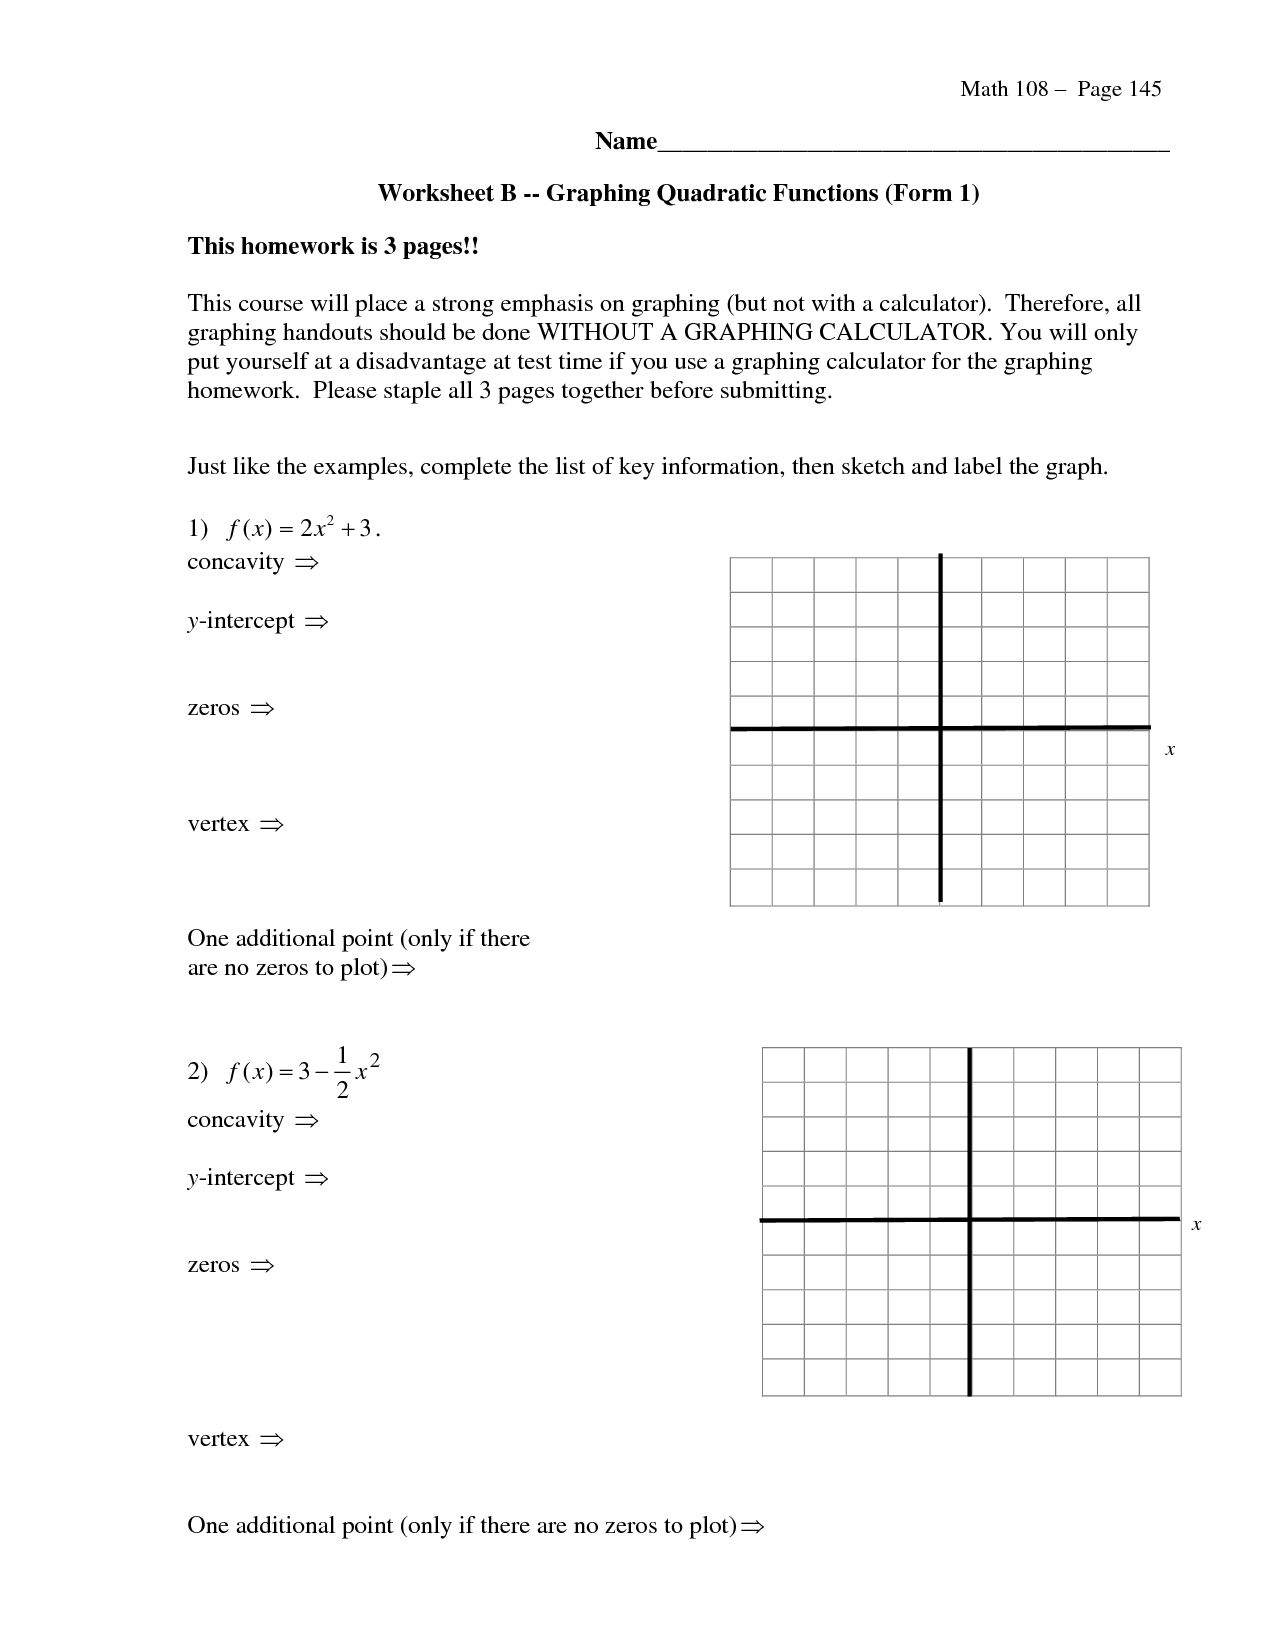 Graphing Quadratics Review Worksheet Answers Key